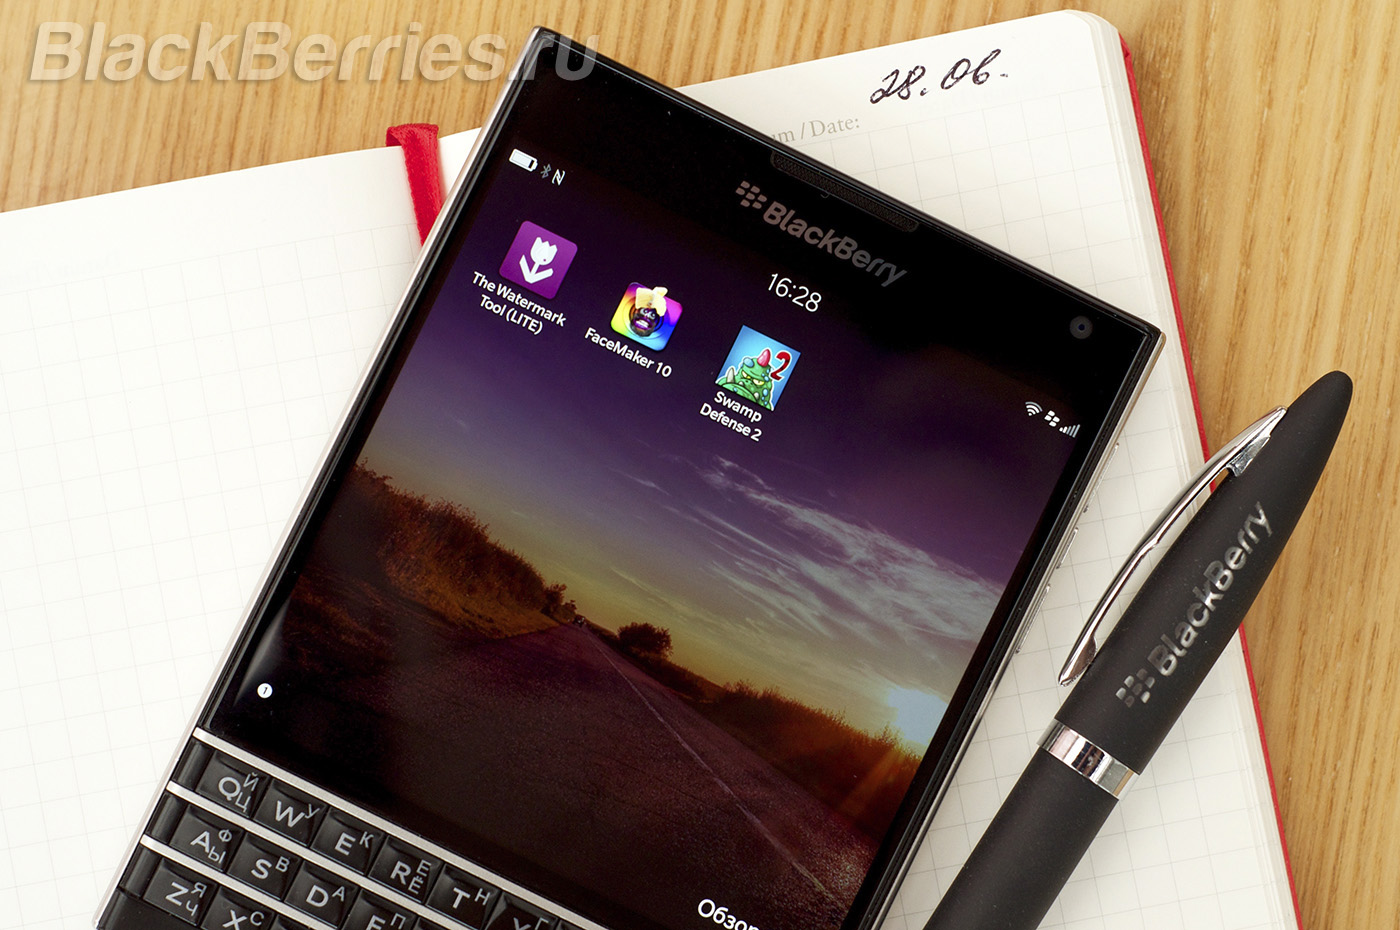 BlackBerry-Apps-28-06-1